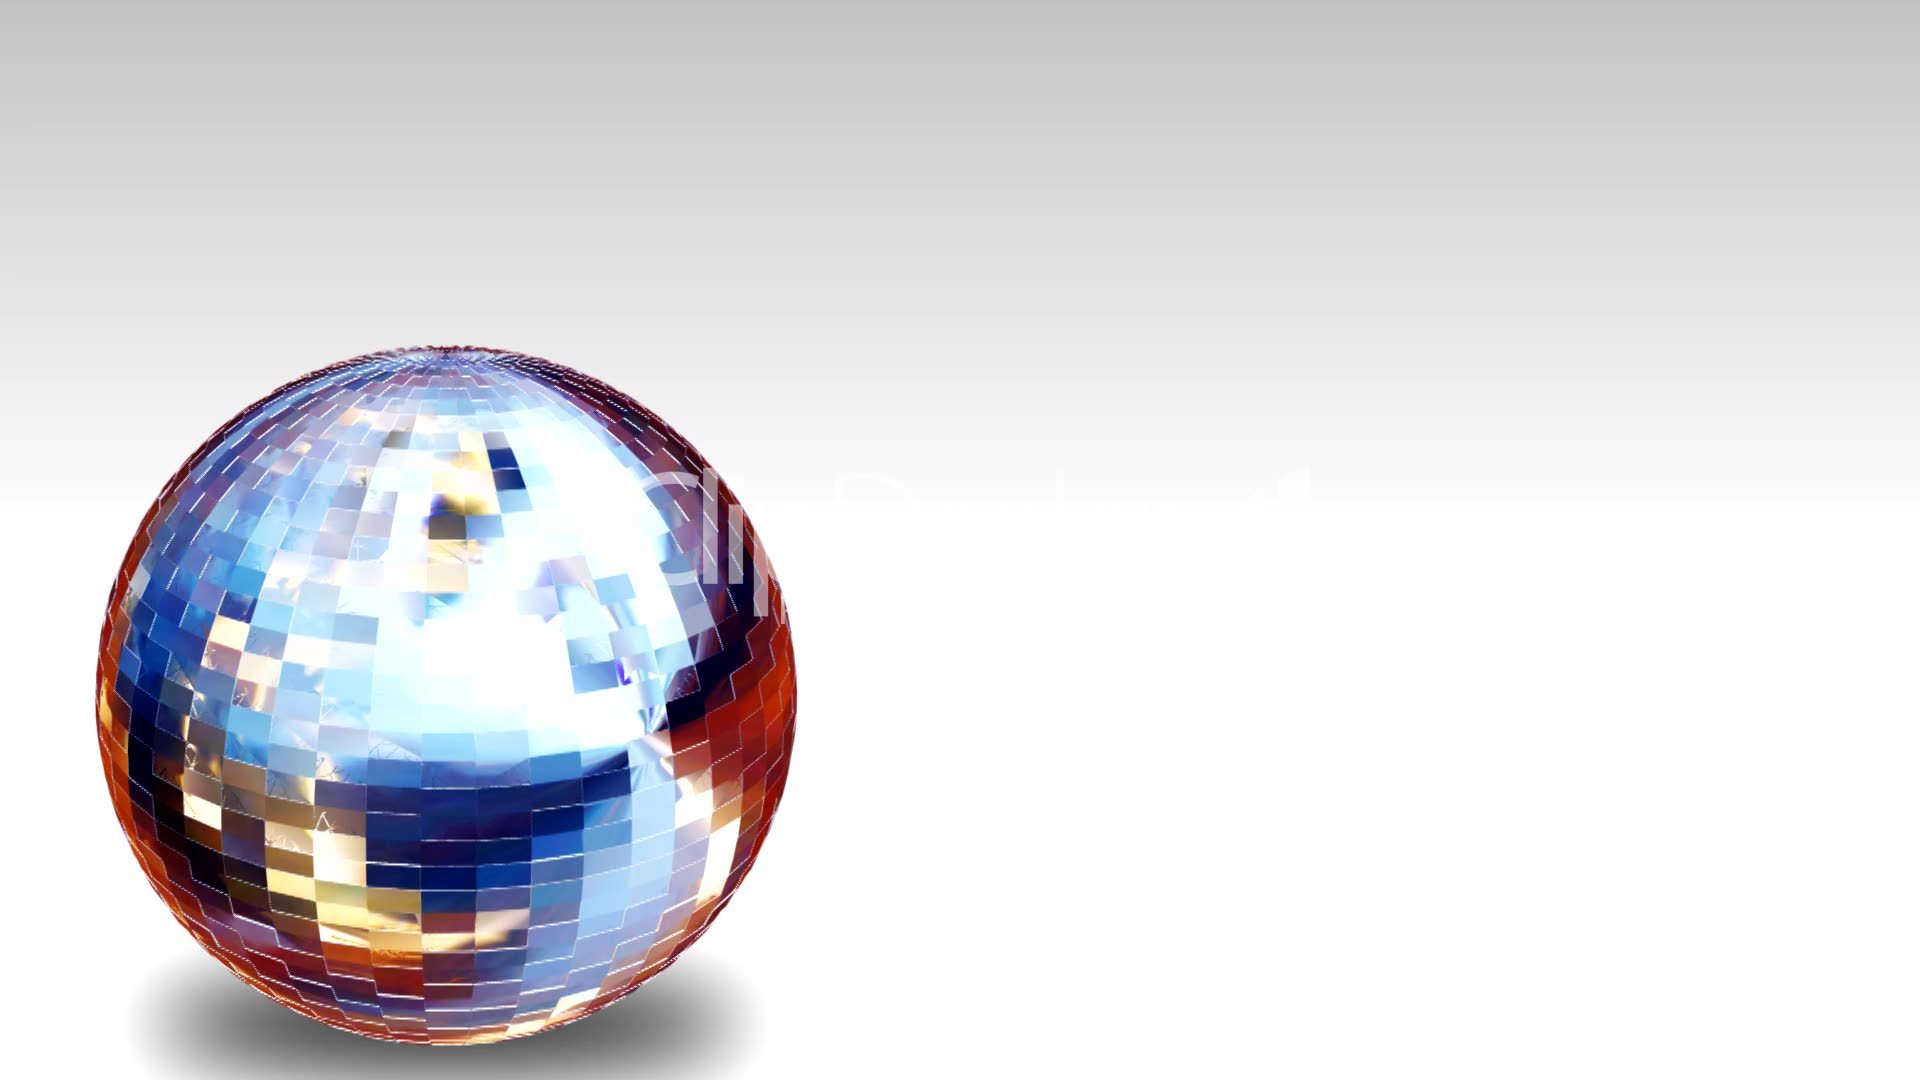 Blue Wallpaper 1920x1080 3d 3d Animation Disco Ball Royalty Free Video And Stock Footage